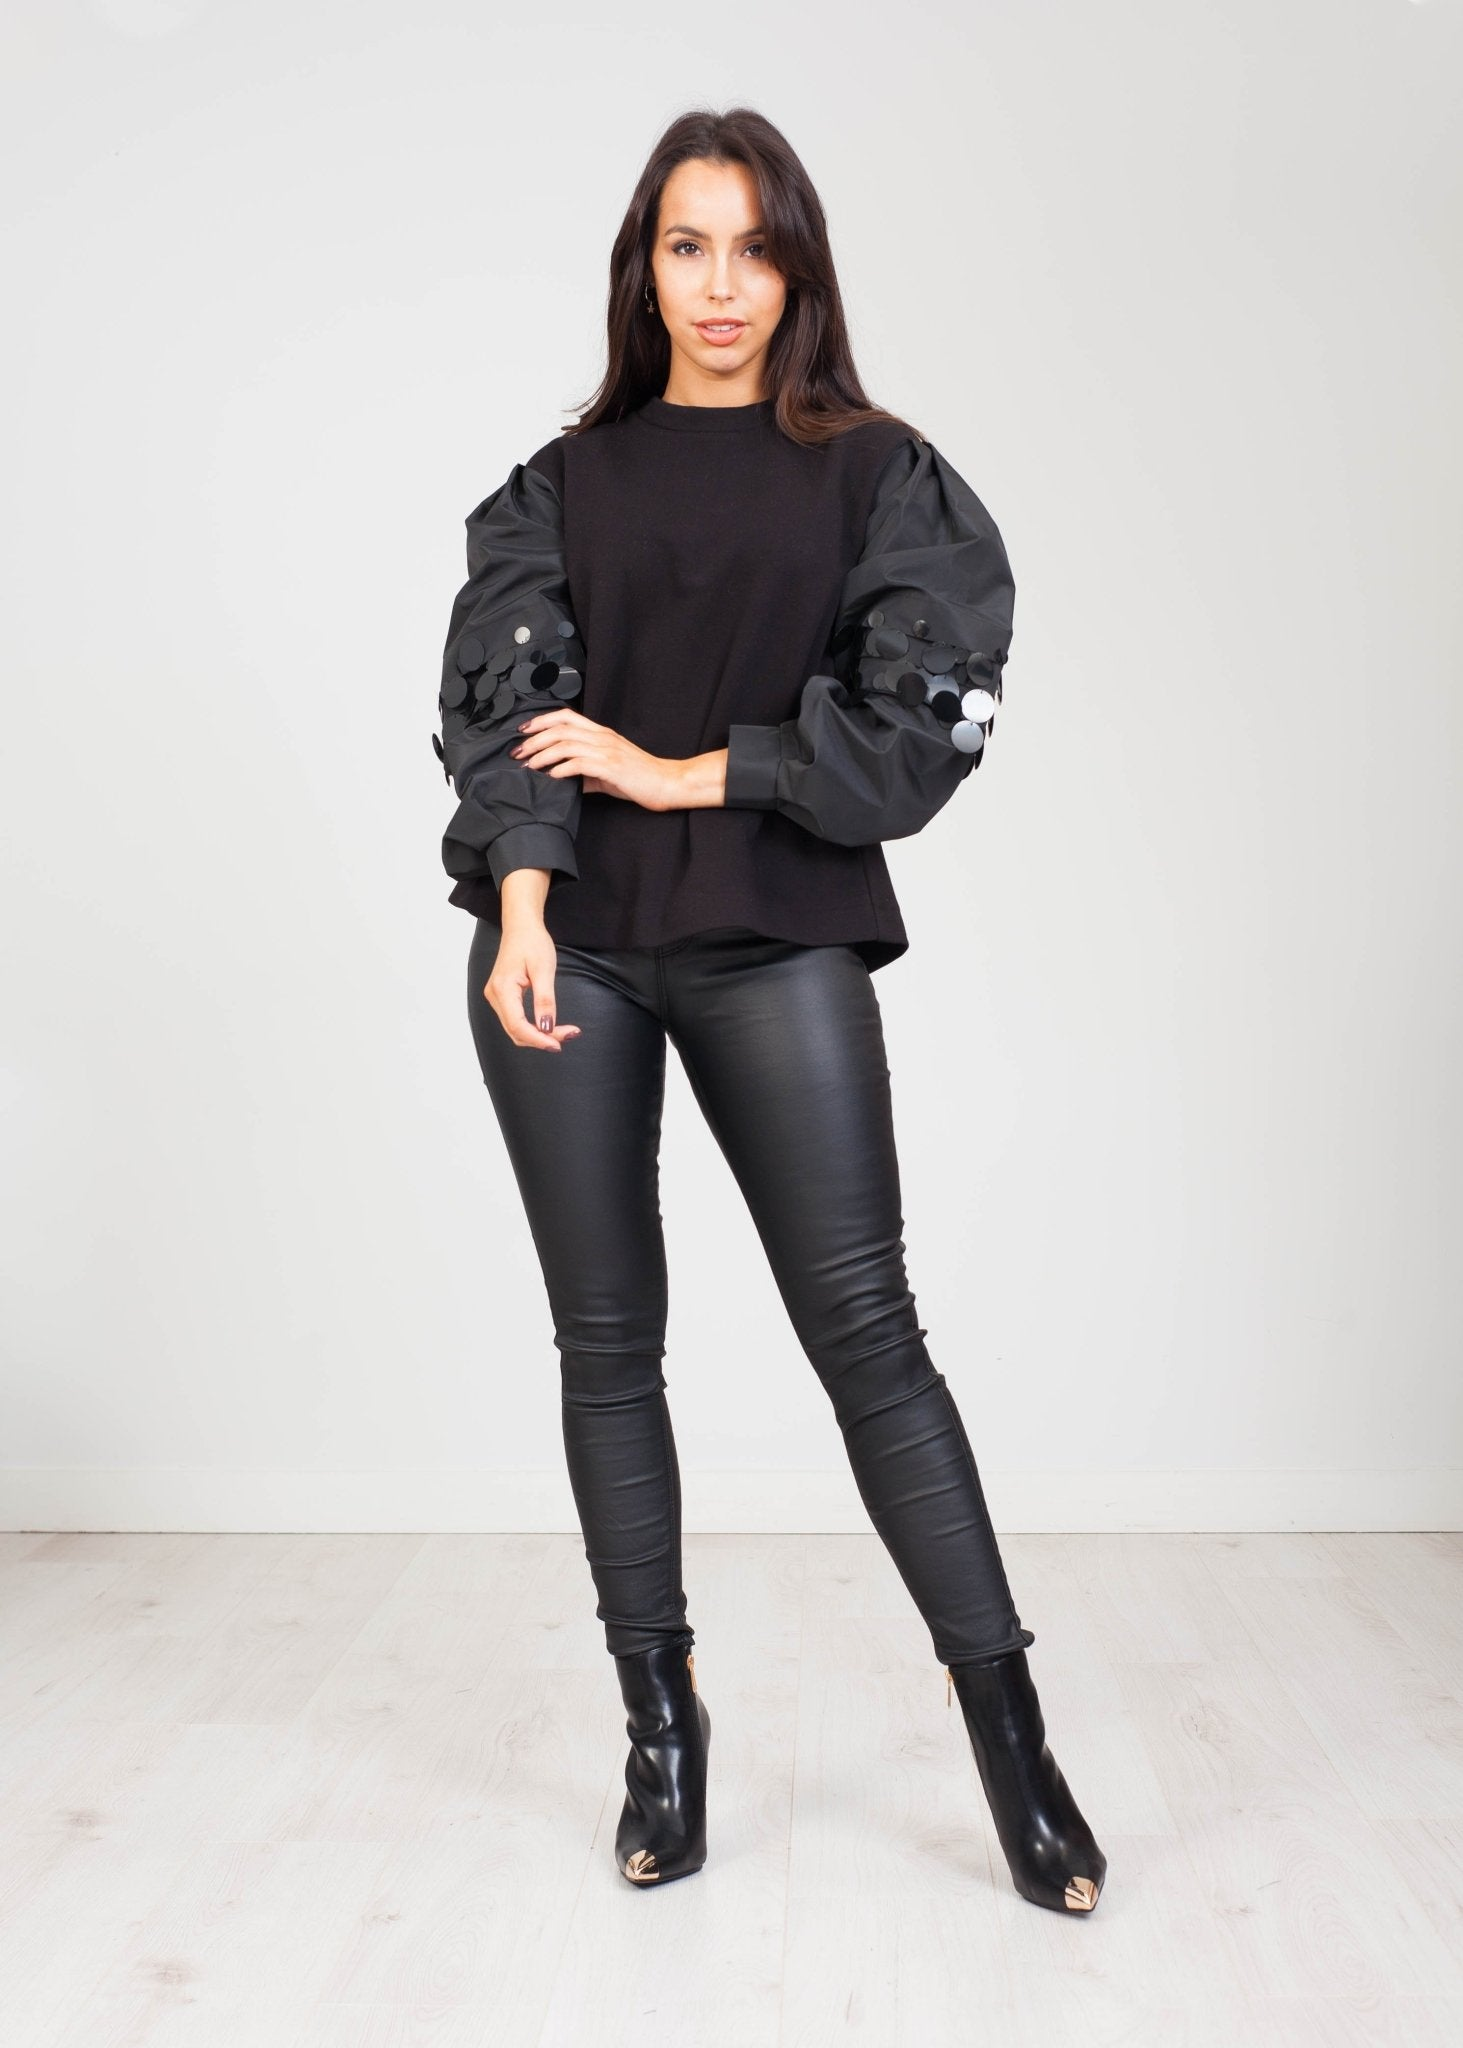 Eva Jumper with Sequins in Black - The Walk in Wardrobe